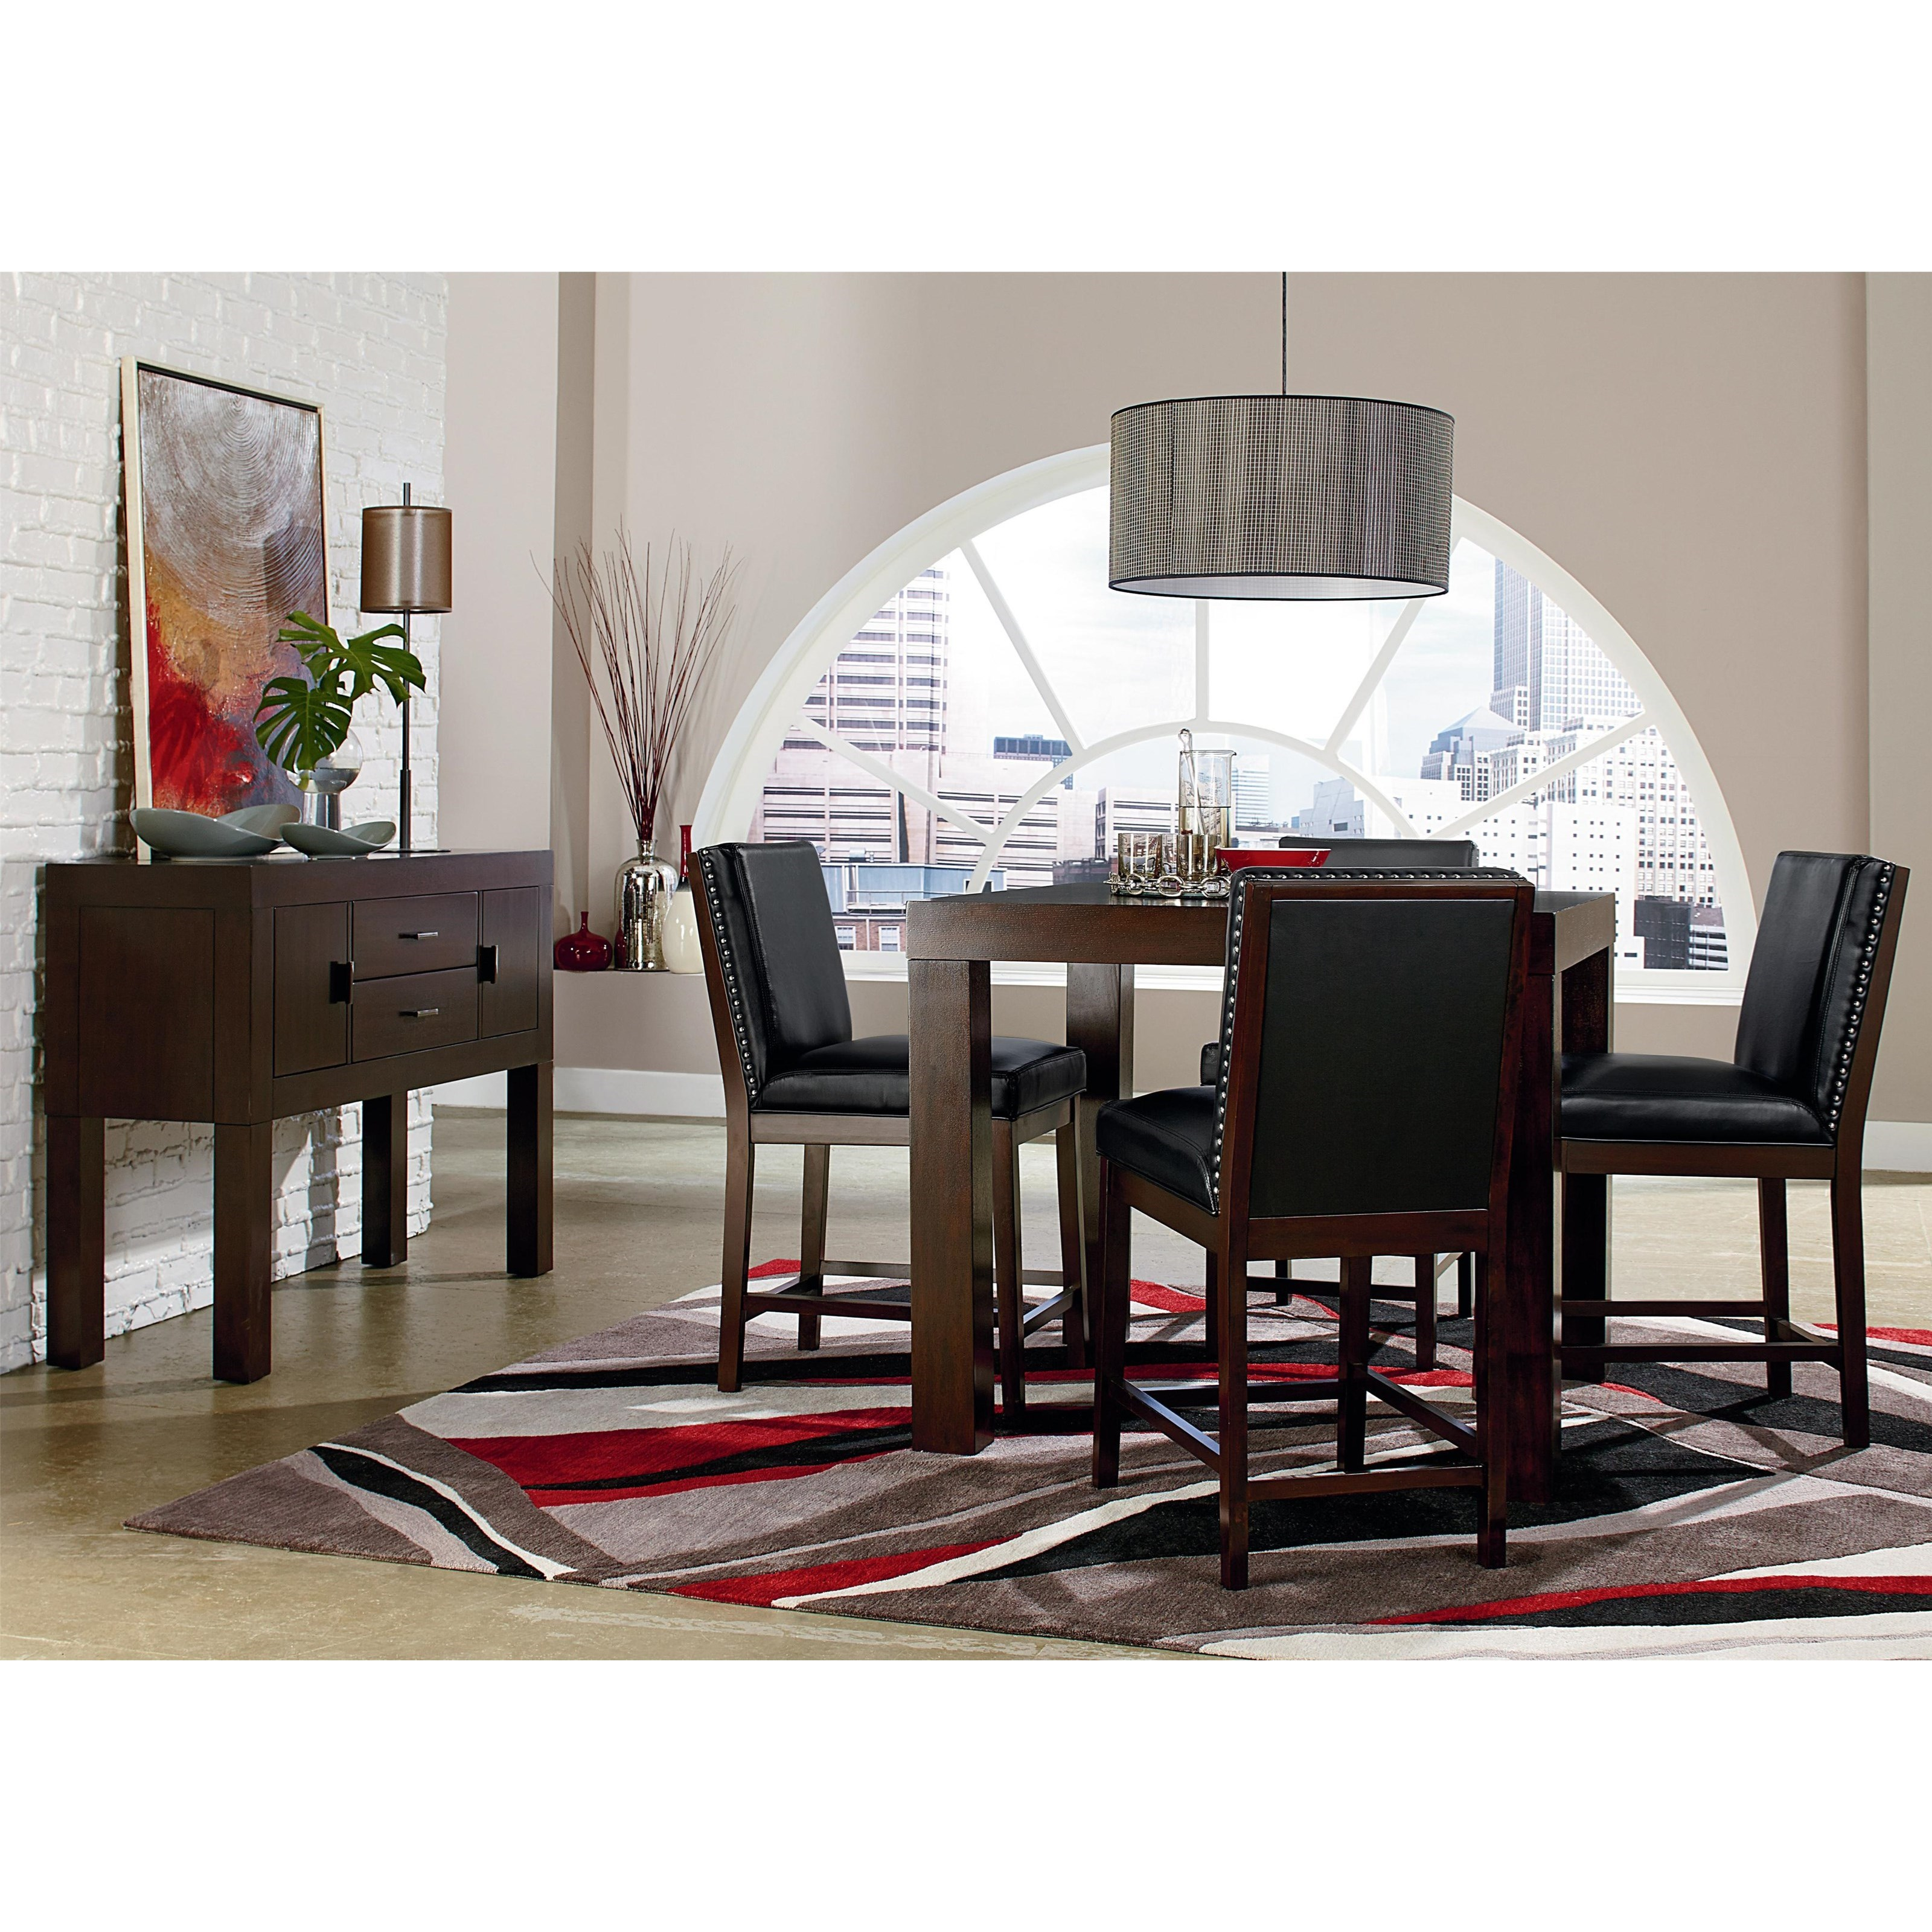 Couture Elegance Dining Table and Four Black Chairs  / $20.99 A Week